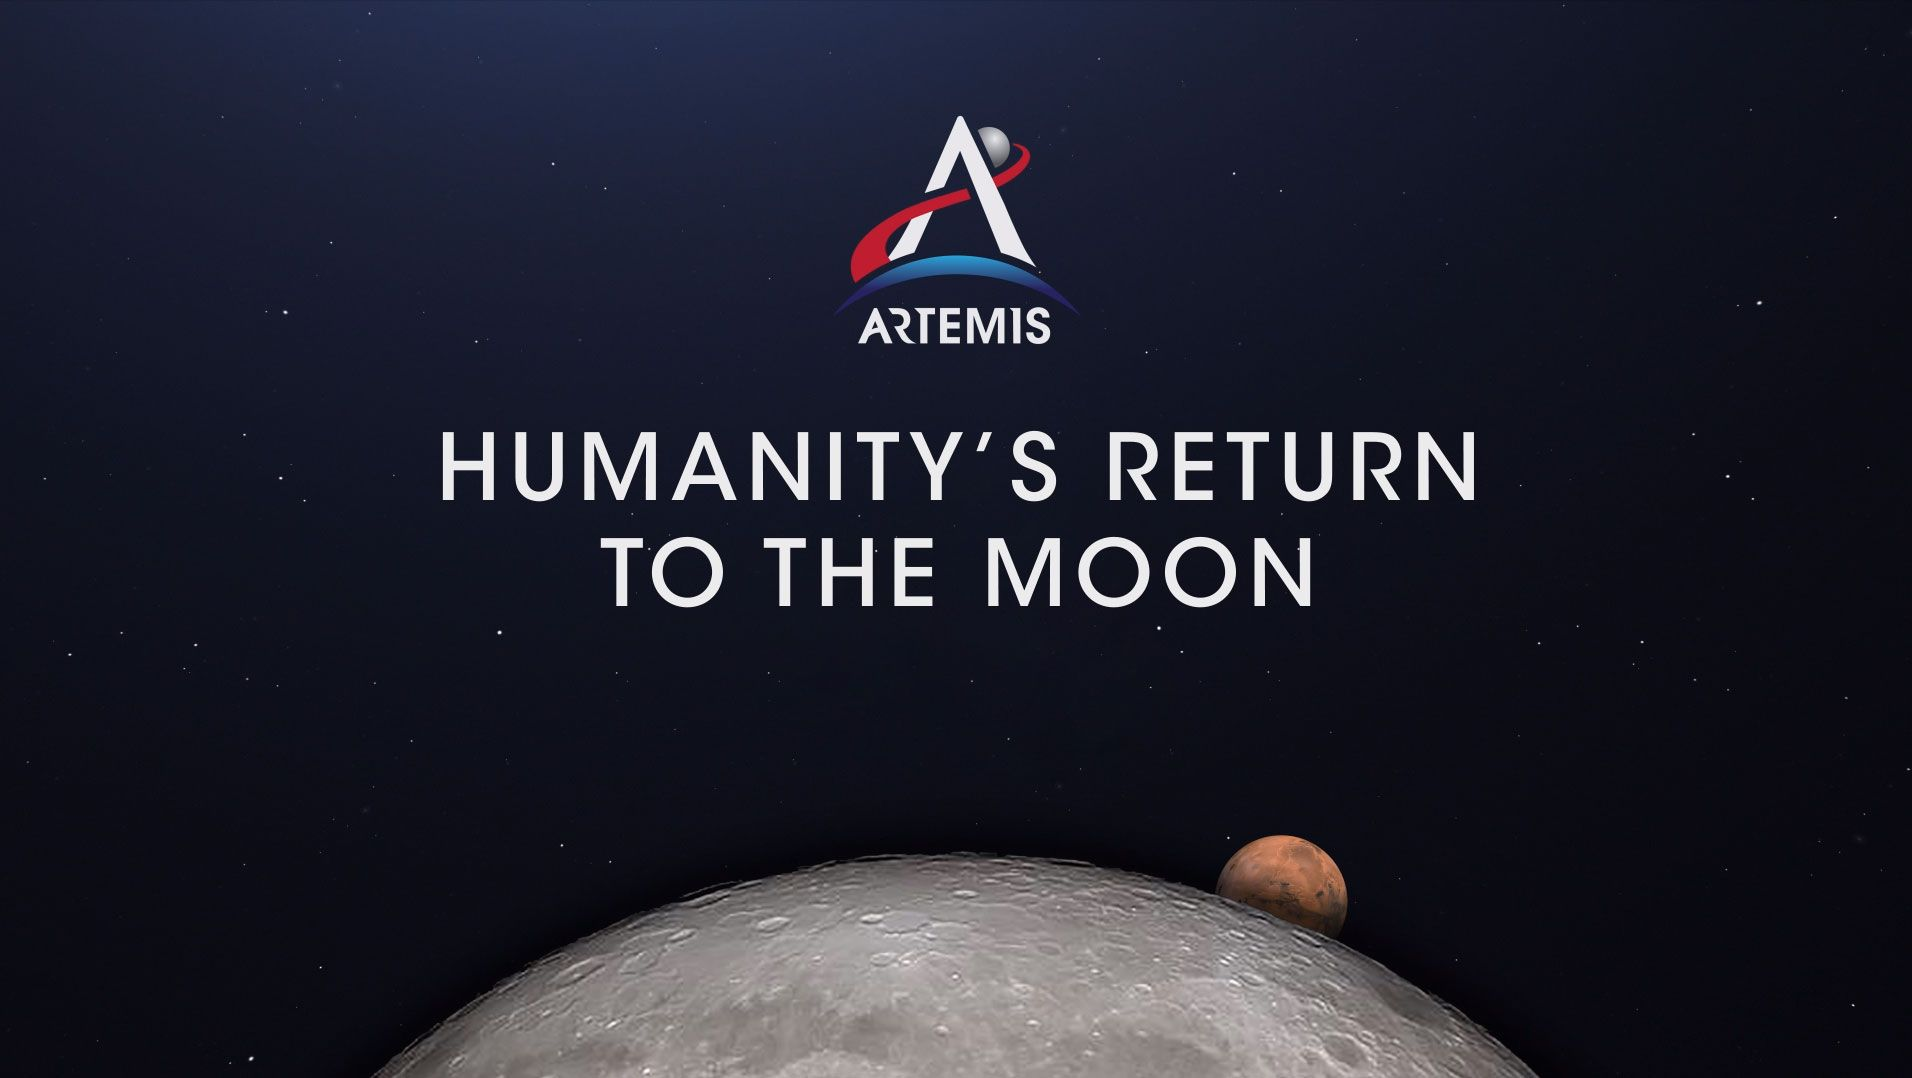 8 Nations Sign US-led Artemis Accords for Moon Exploration